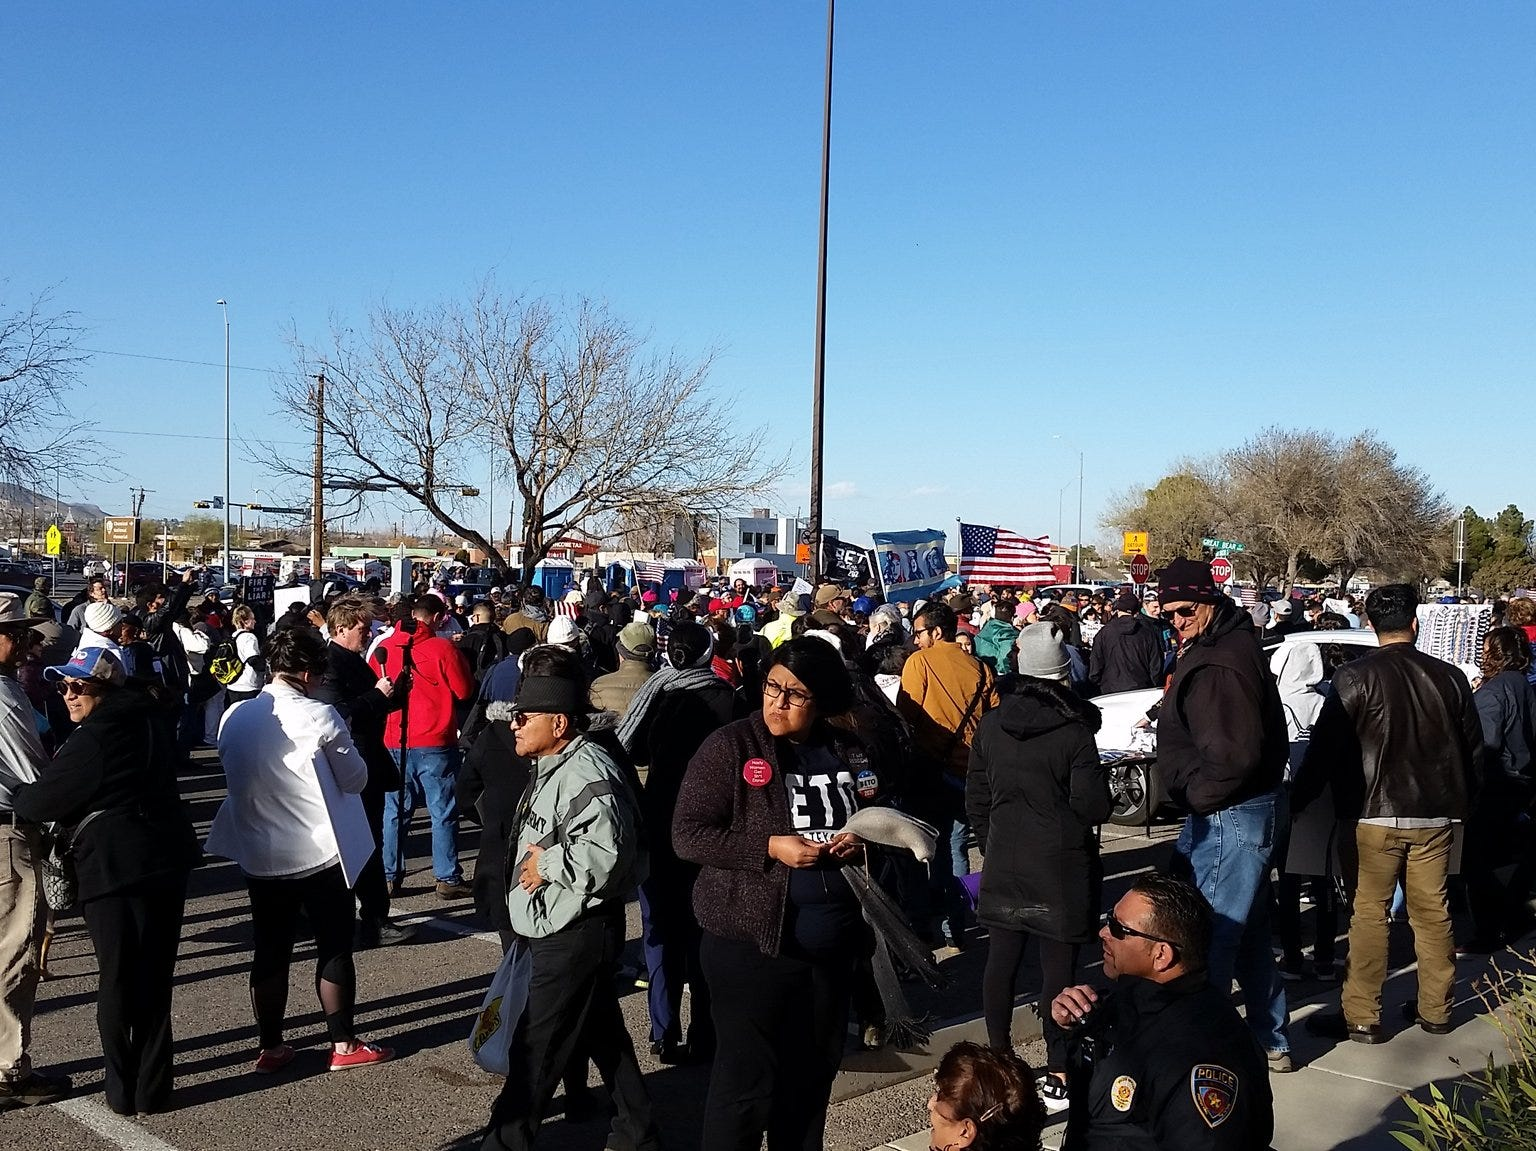 The number of counterprotesters grows as they gather Monday.